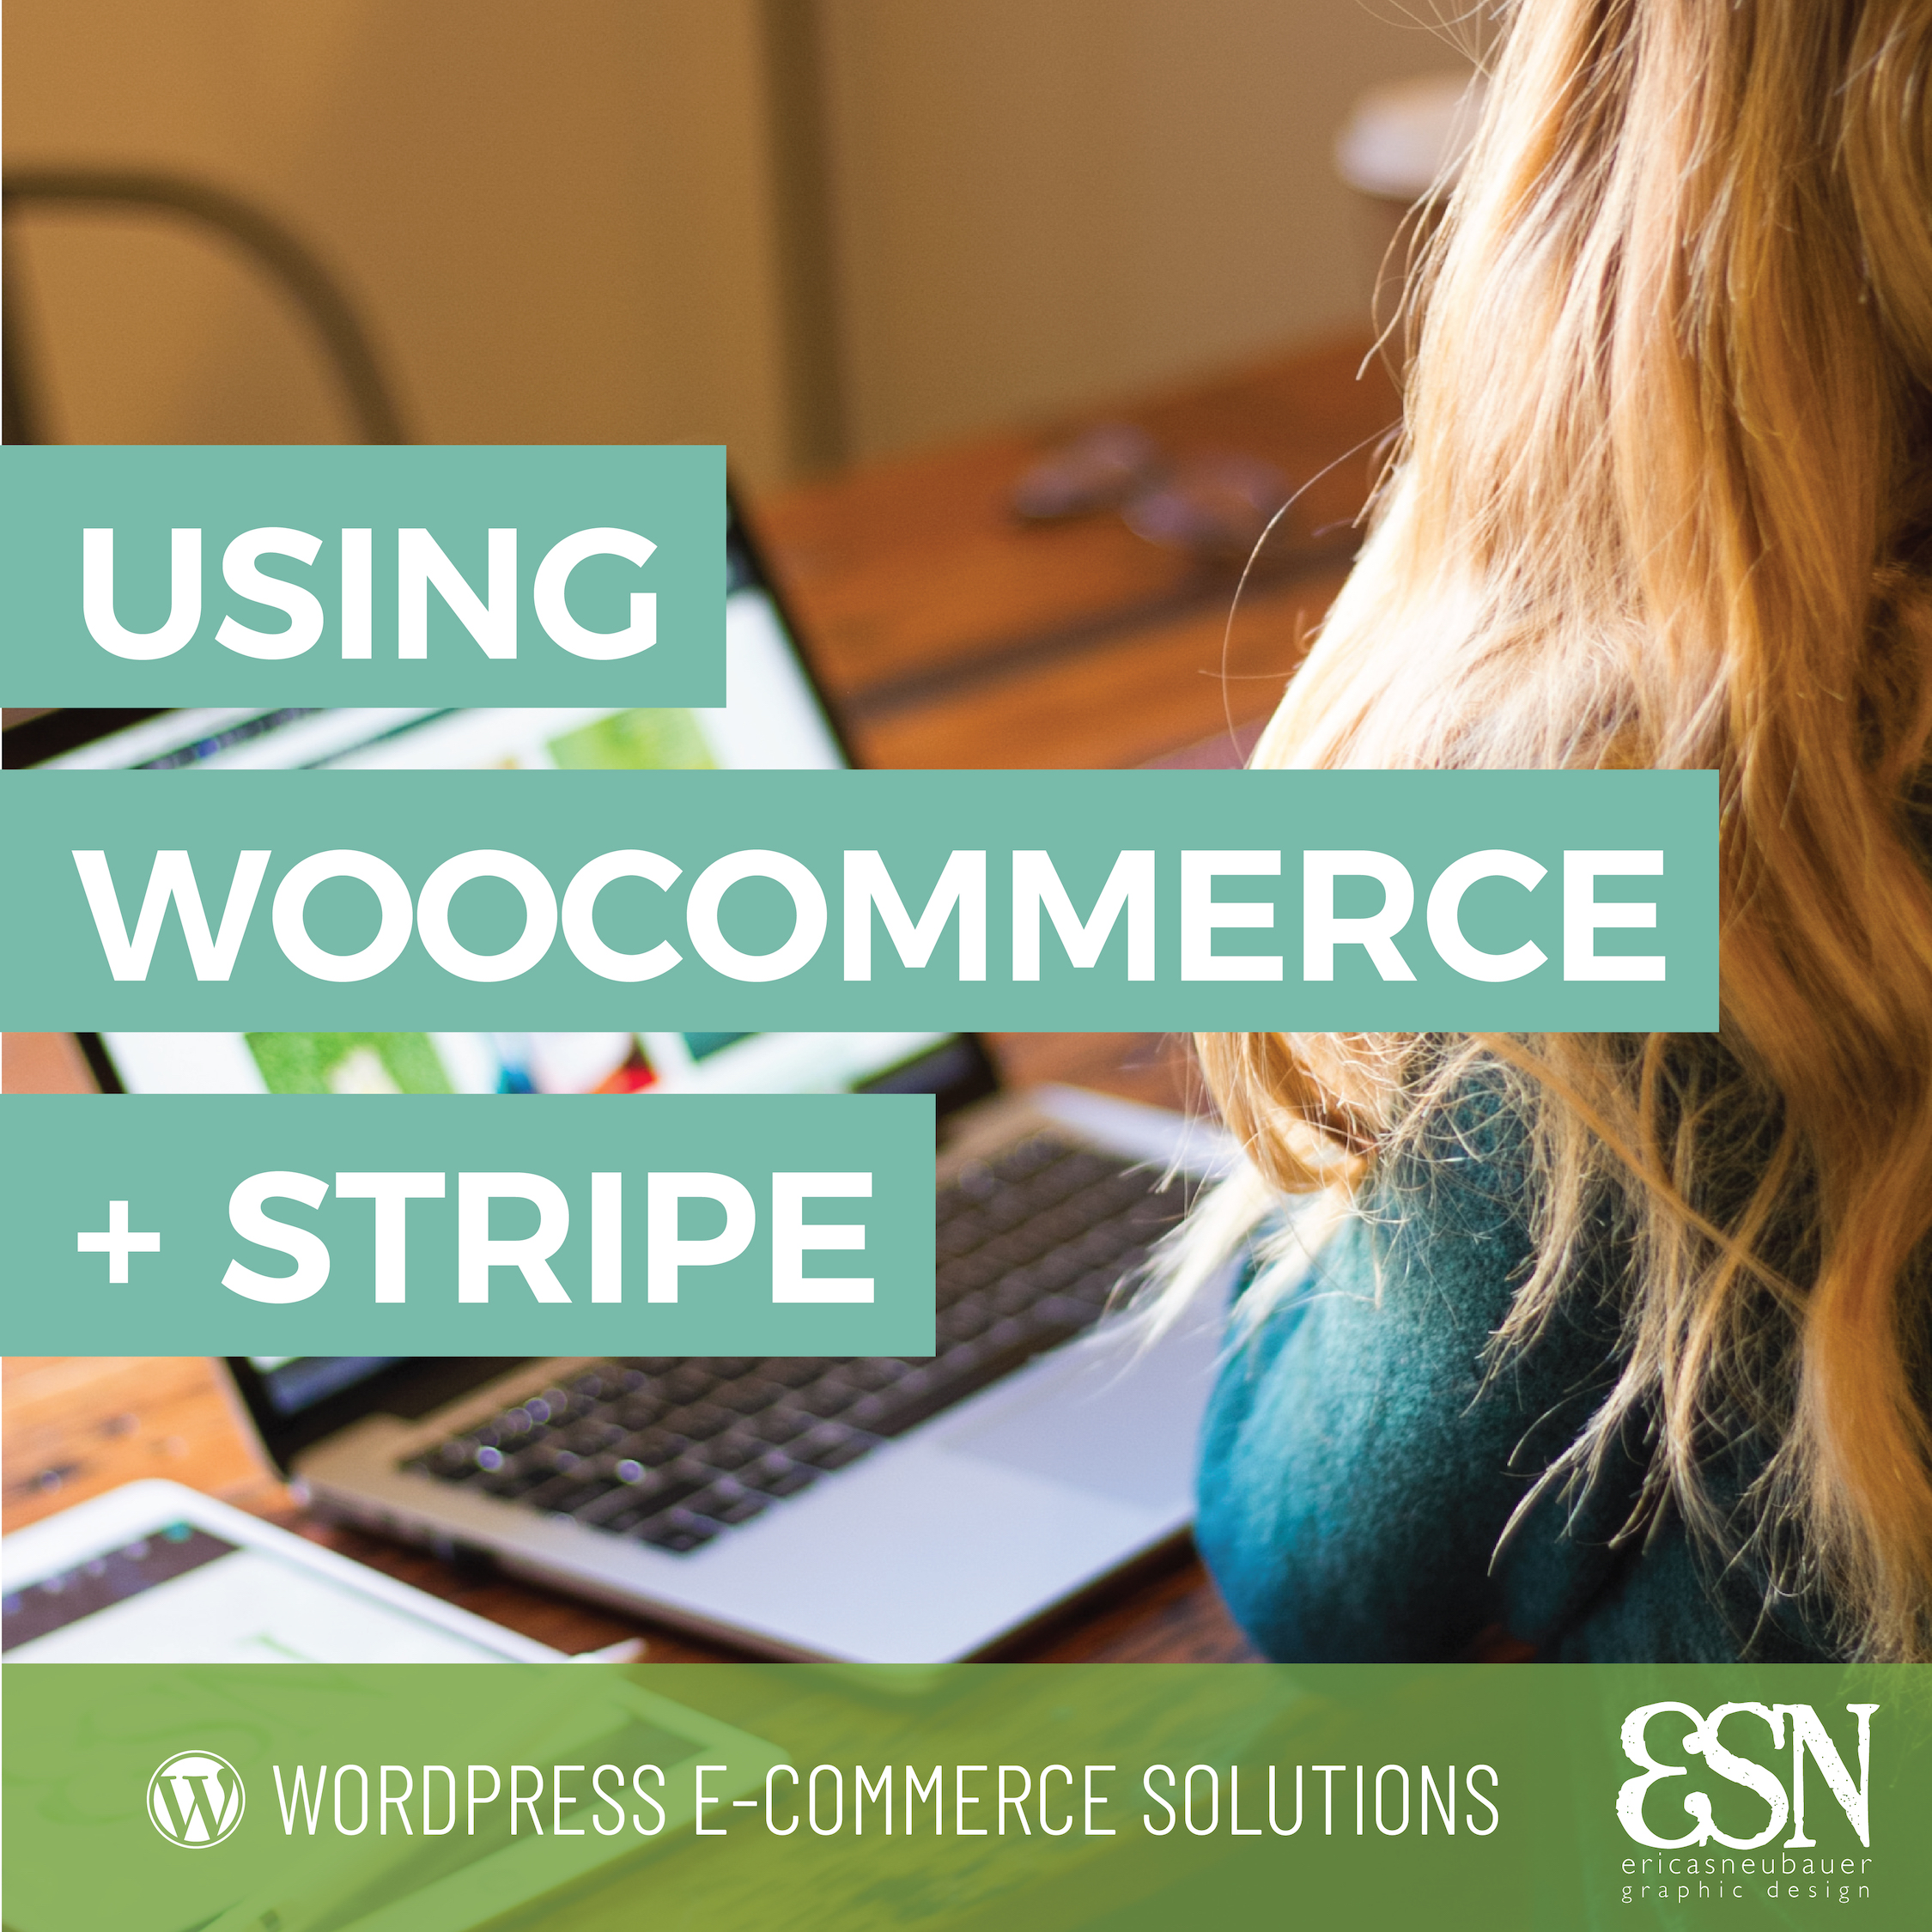 Using WooCommerce and Stripe for a Wordpress e-commerce store